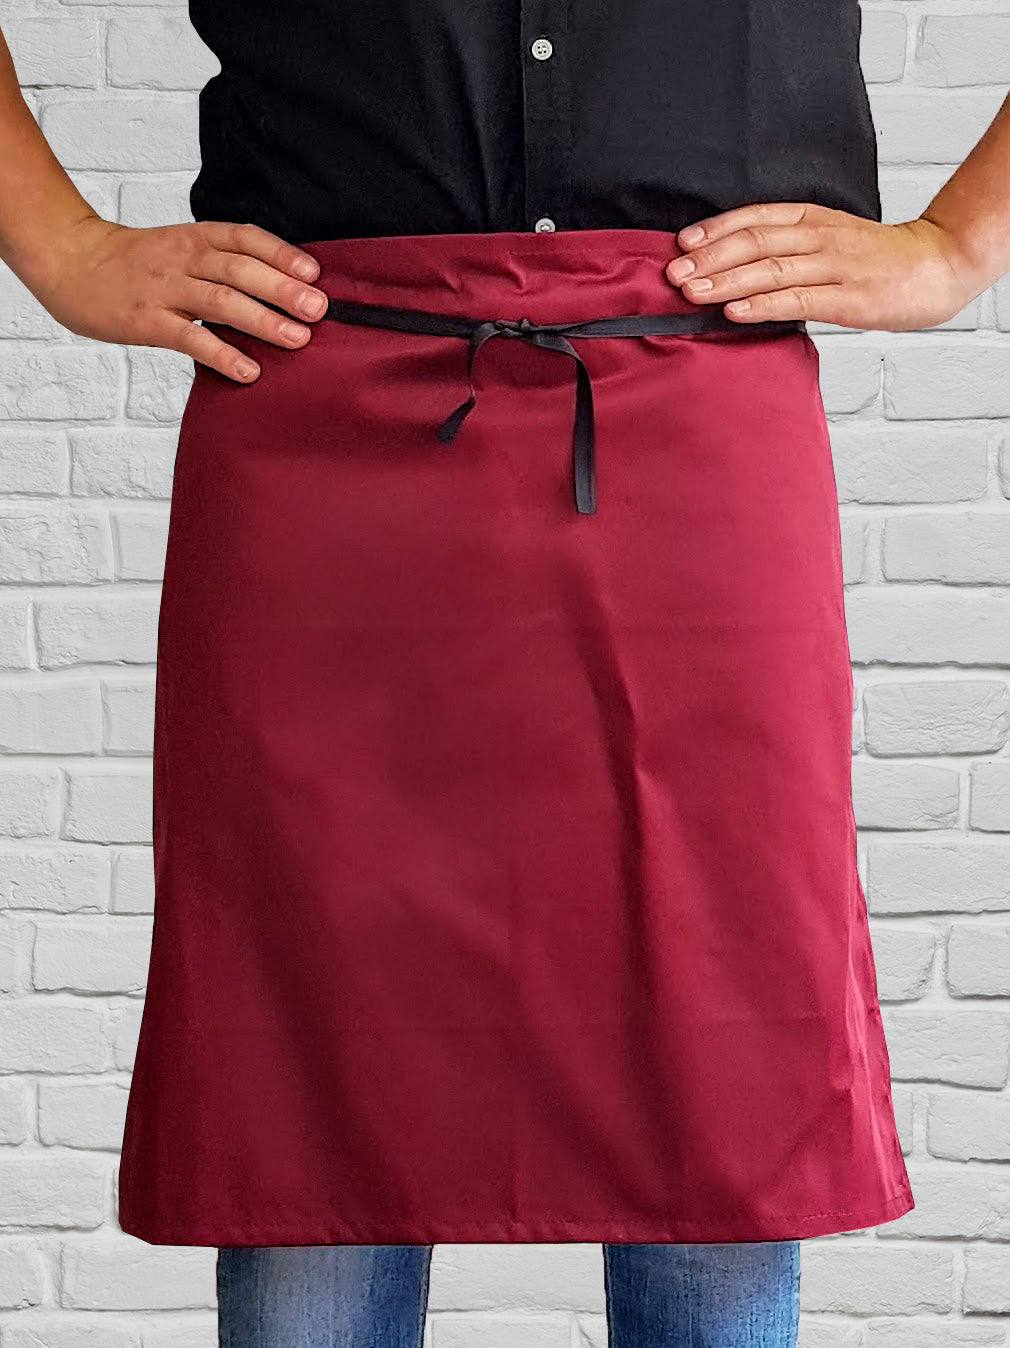 Long Waist Apron - Red